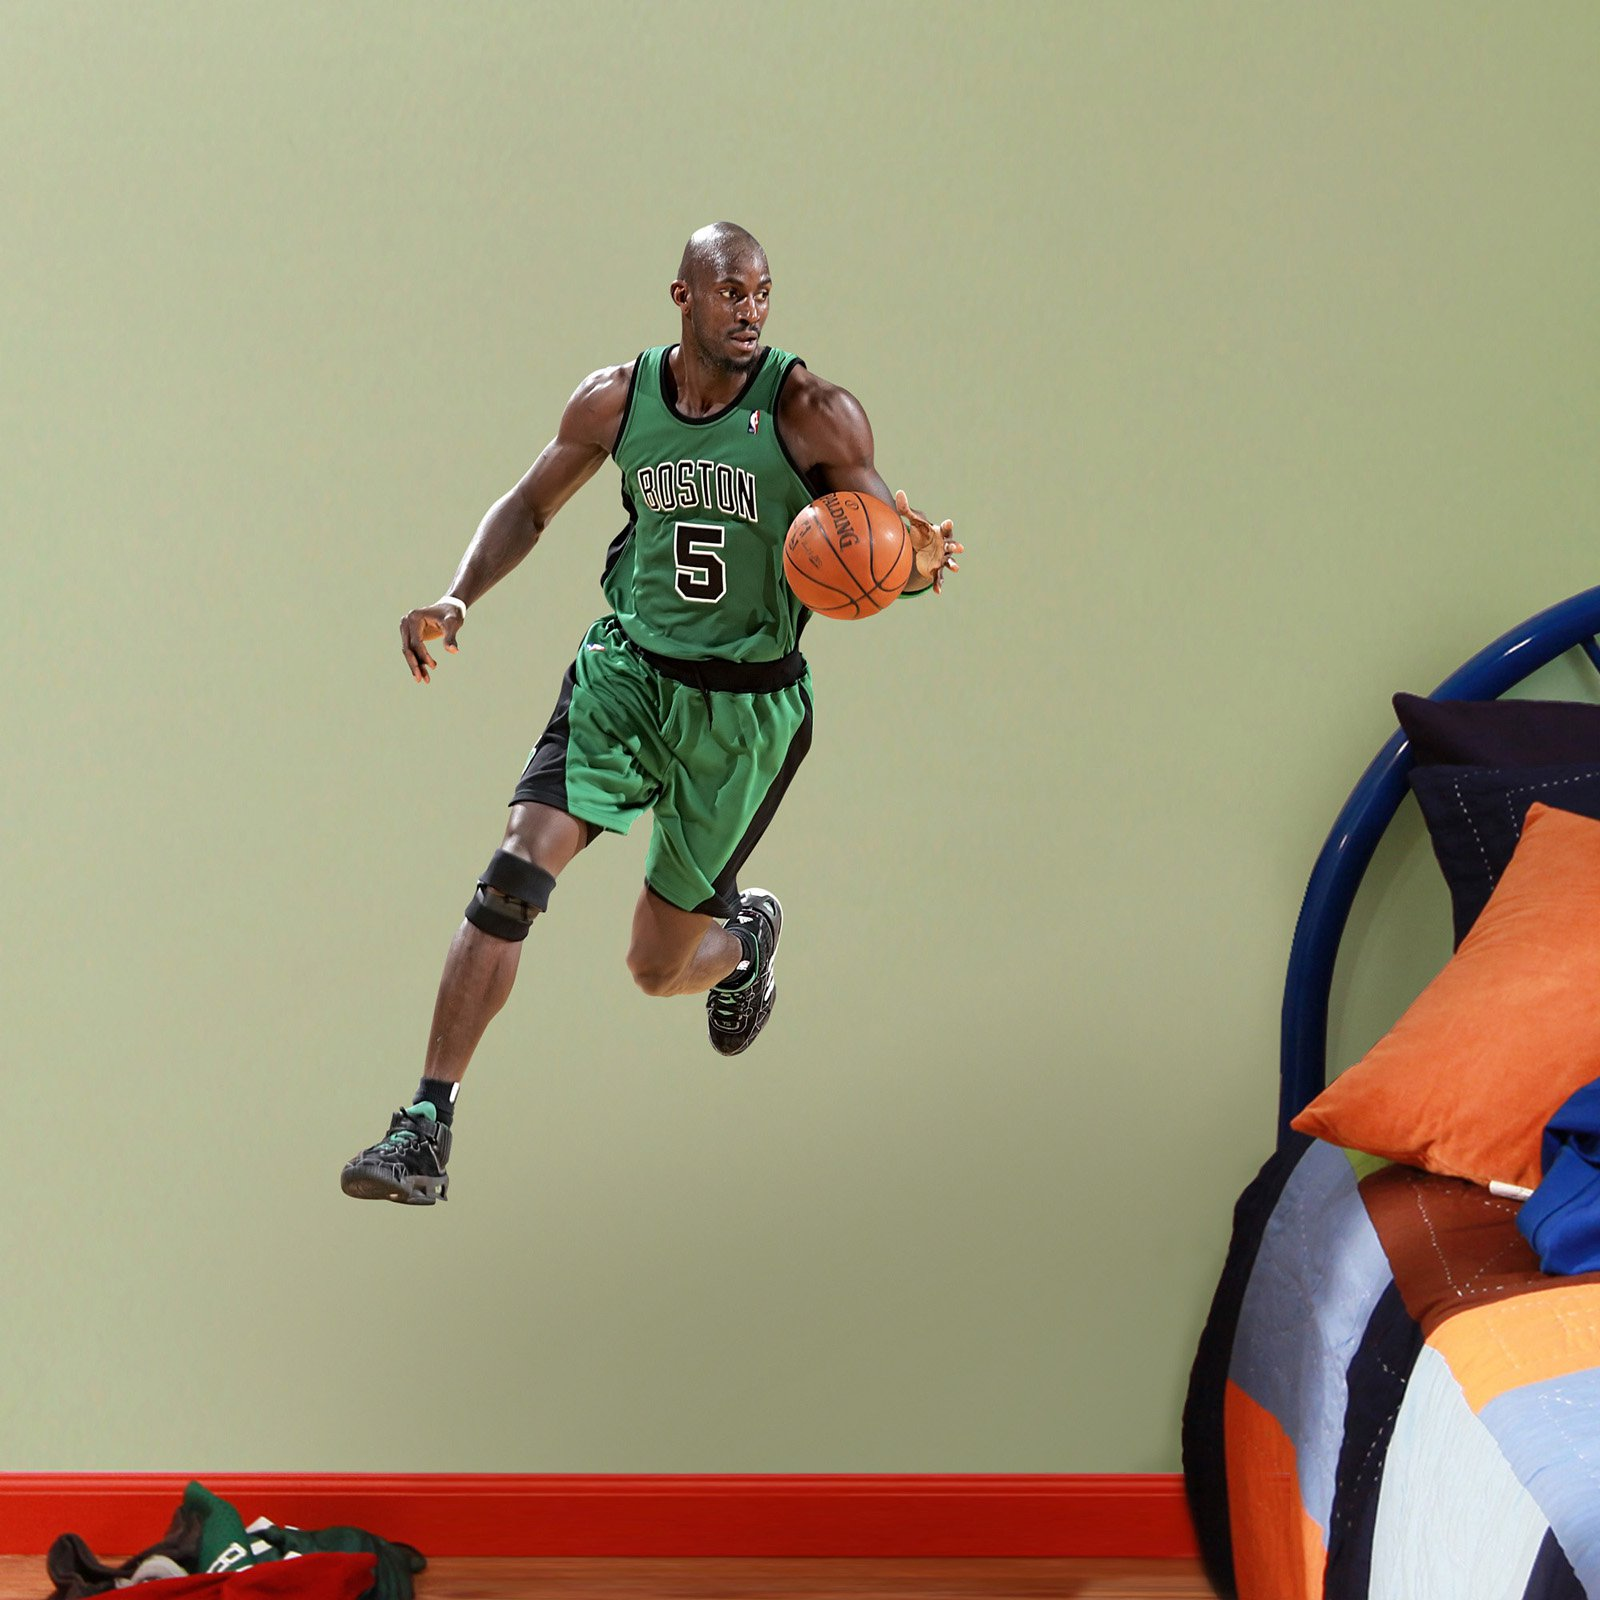 Fathead Jr. NBA Player Wall Decal